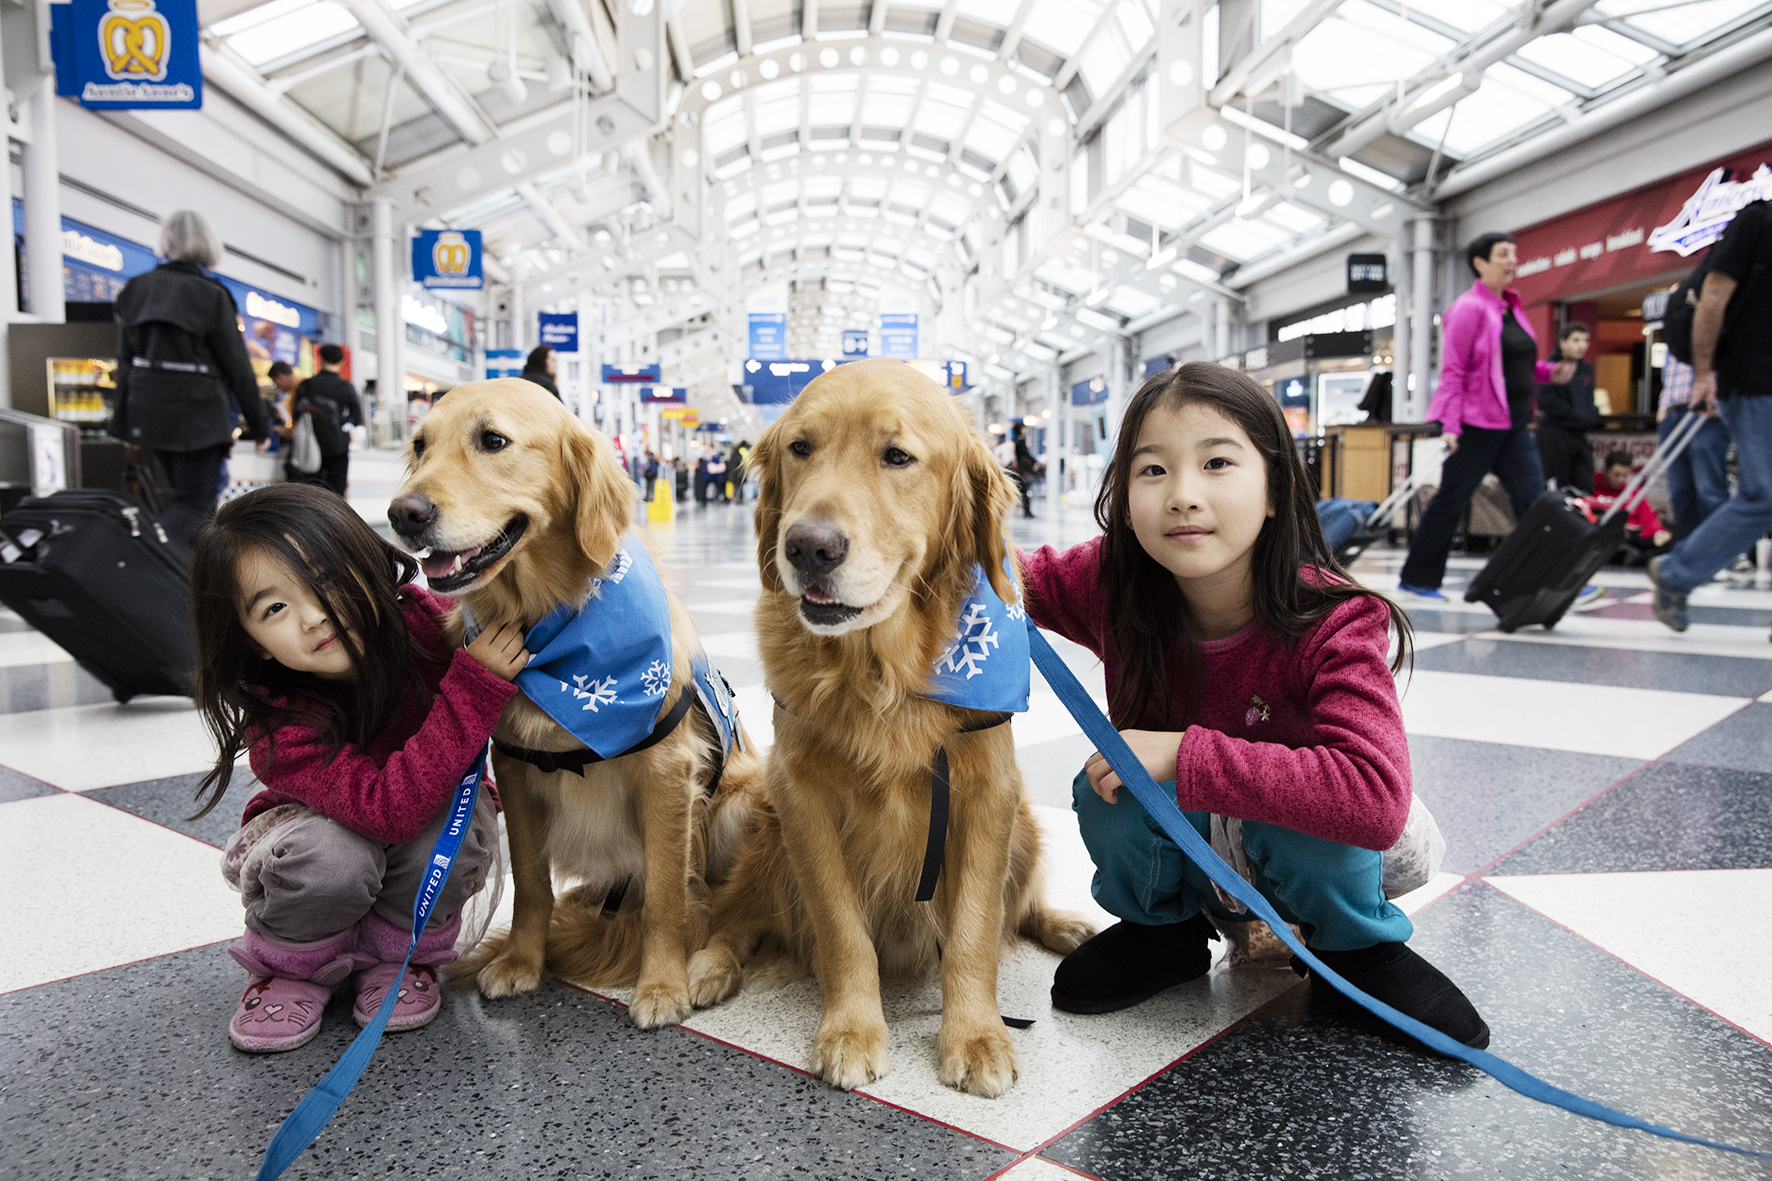 Comfort dogs from United Airlines at Chicago O'Hare International Airport on Dec. 21, 2015.